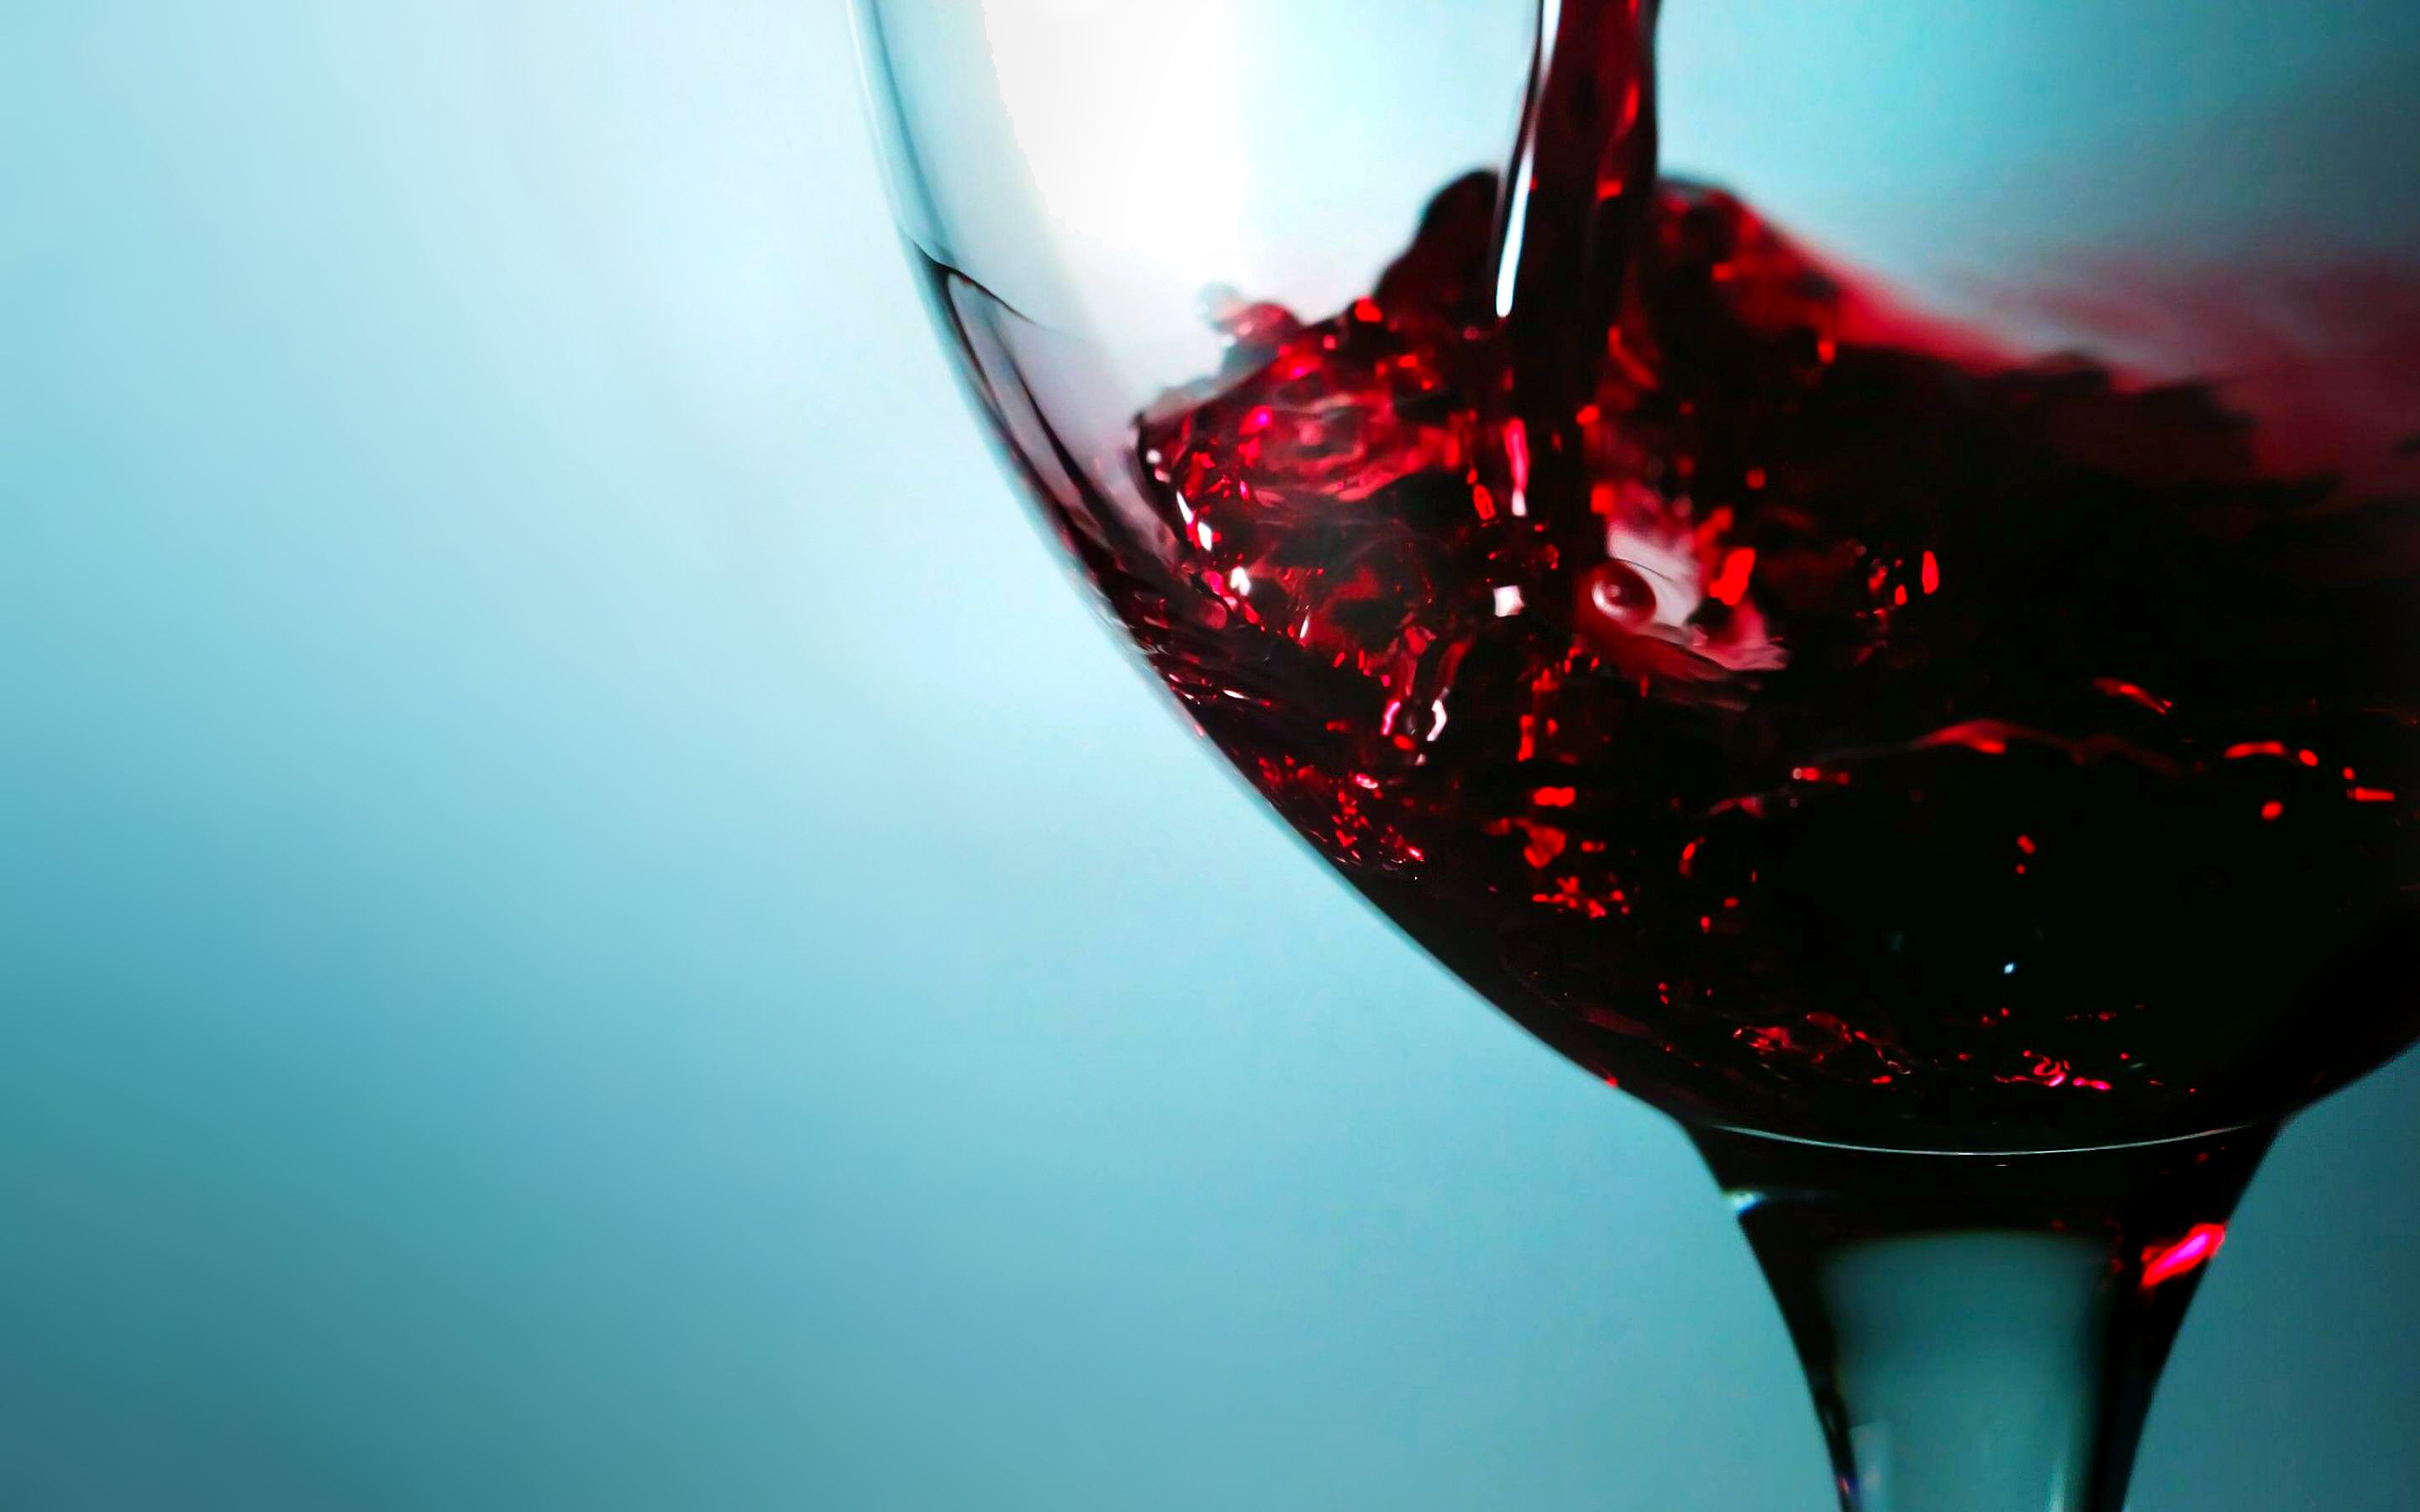 250 Wine Hd Wallpapers Background Images Wallpaper Abyss